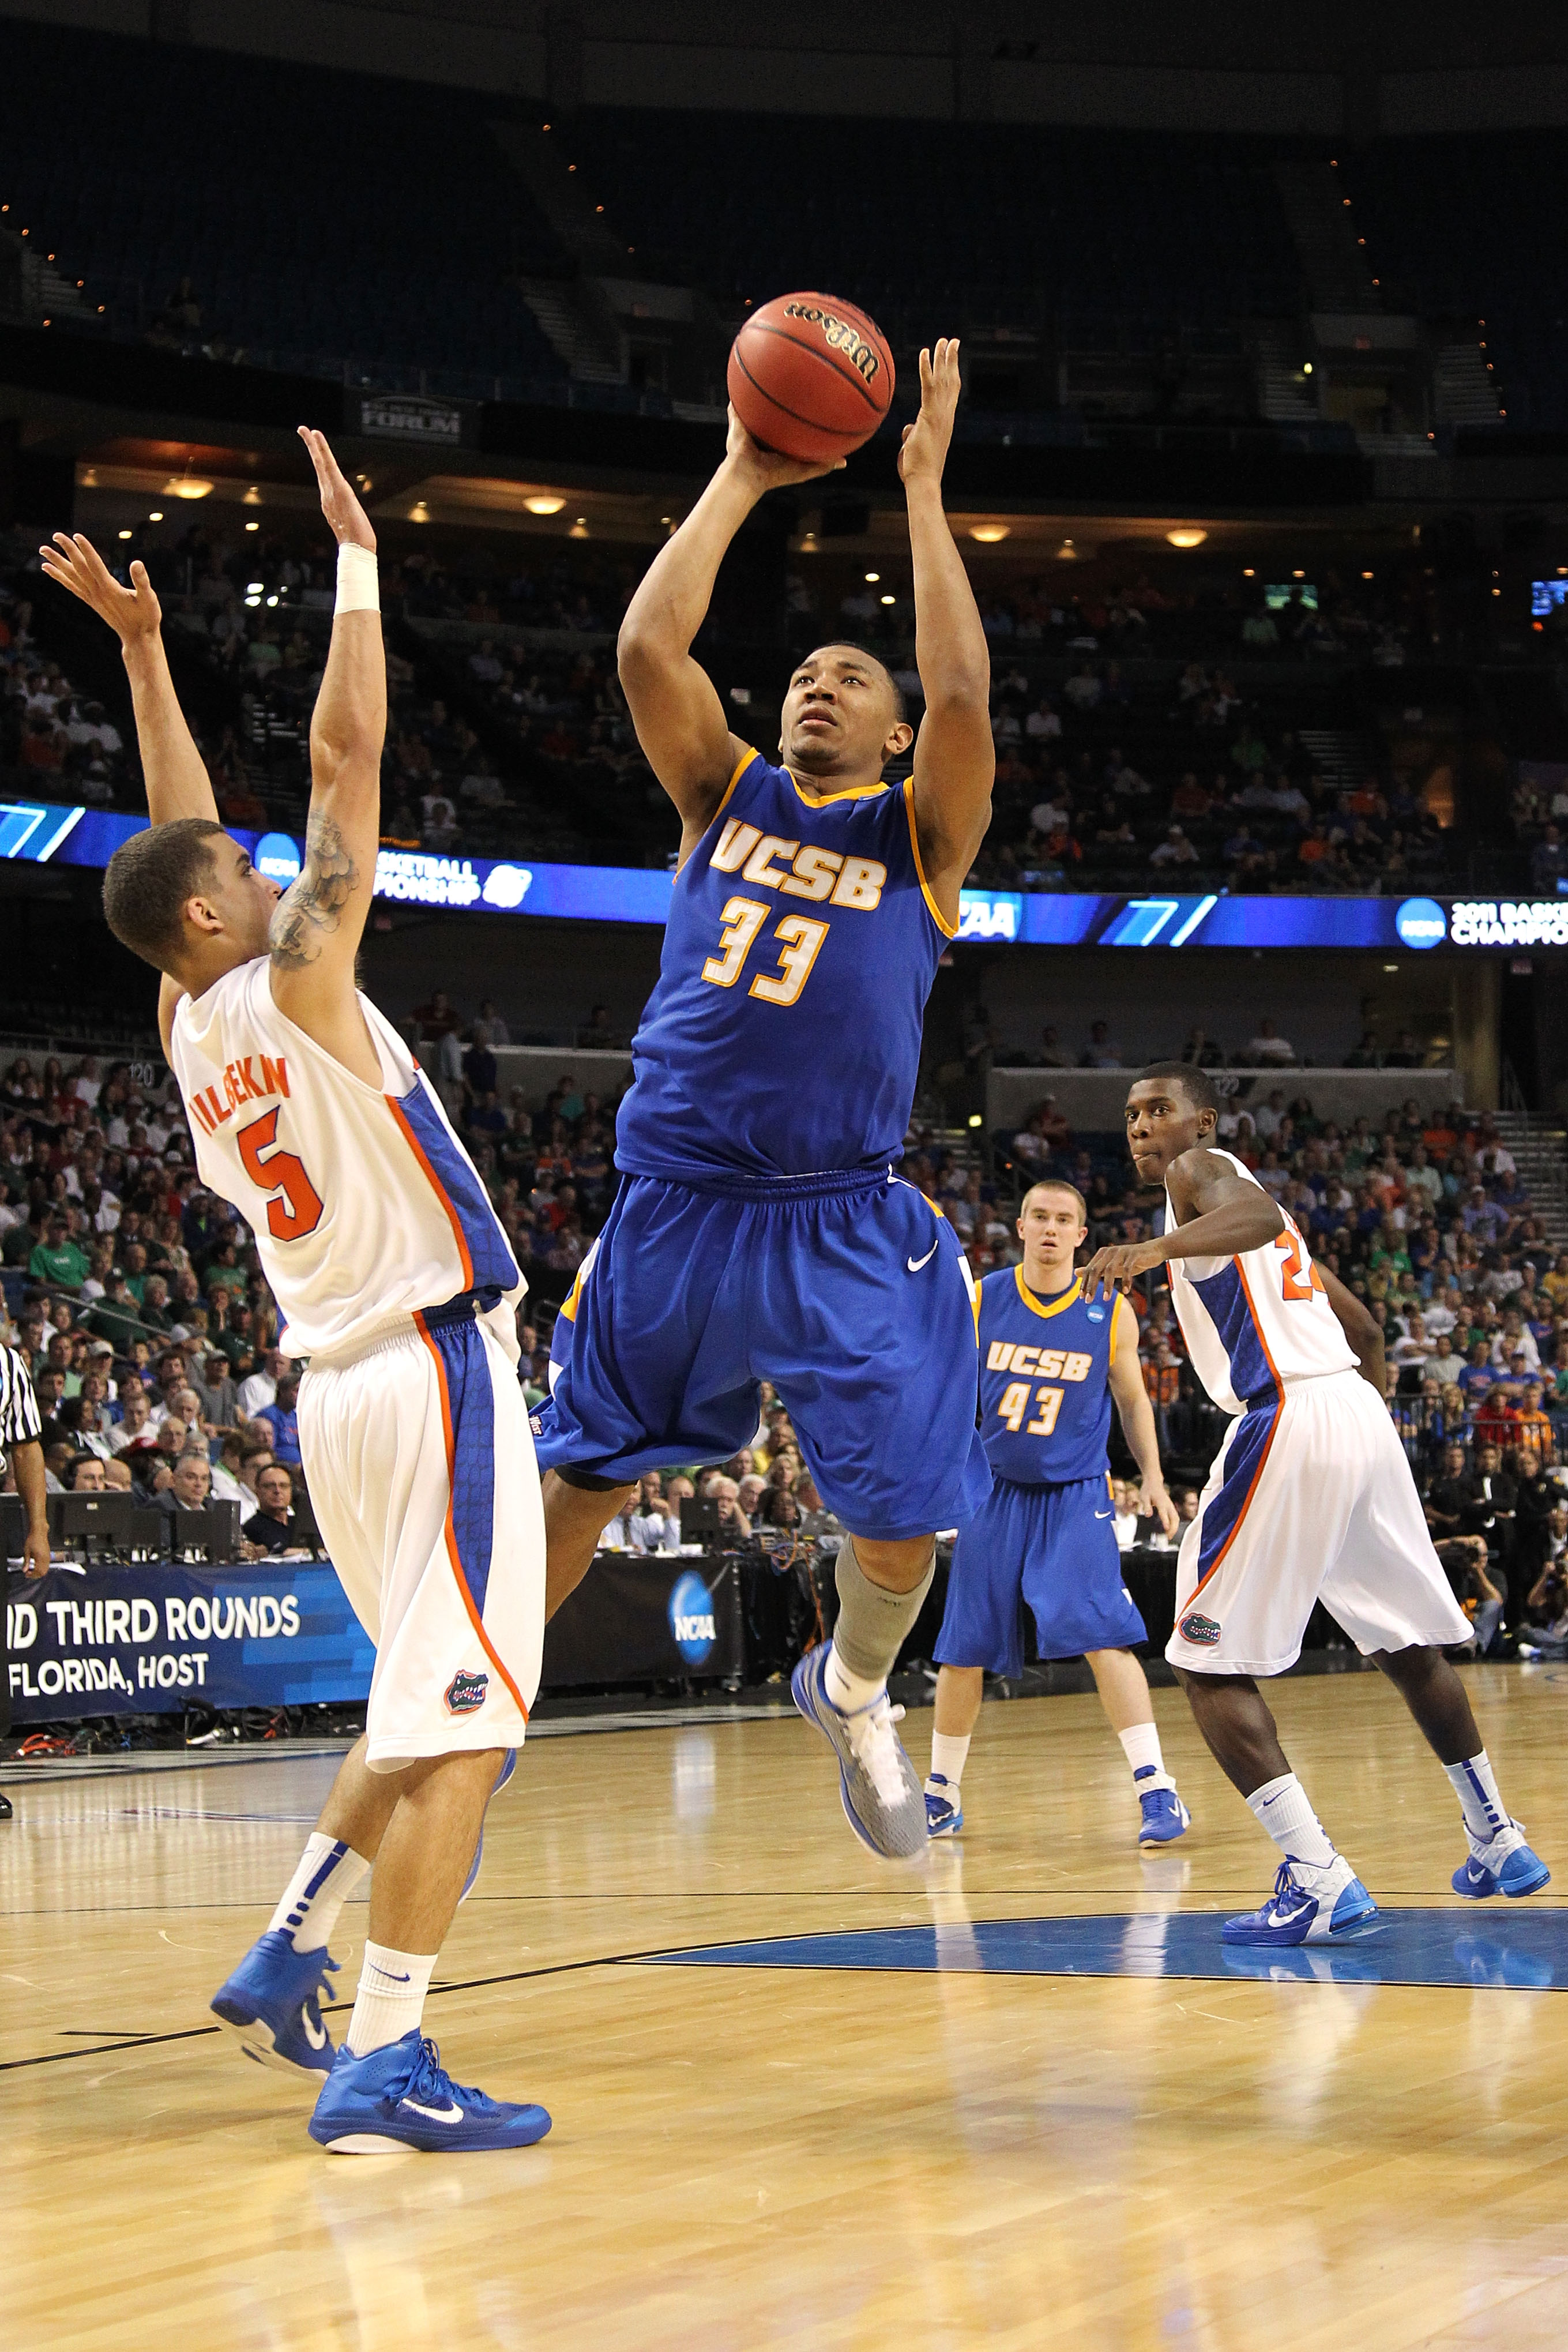 TAMPA, FL - MARCH 17:  Orlando Johnson #33 of the UC Santa Barbara Gauchos drives for a shot attempt against Scottie Wilbekin #5 of the Florida Gators during the second round of the 2011 NCAA men's basketball tournament at St. Pete Times Forum on March 17